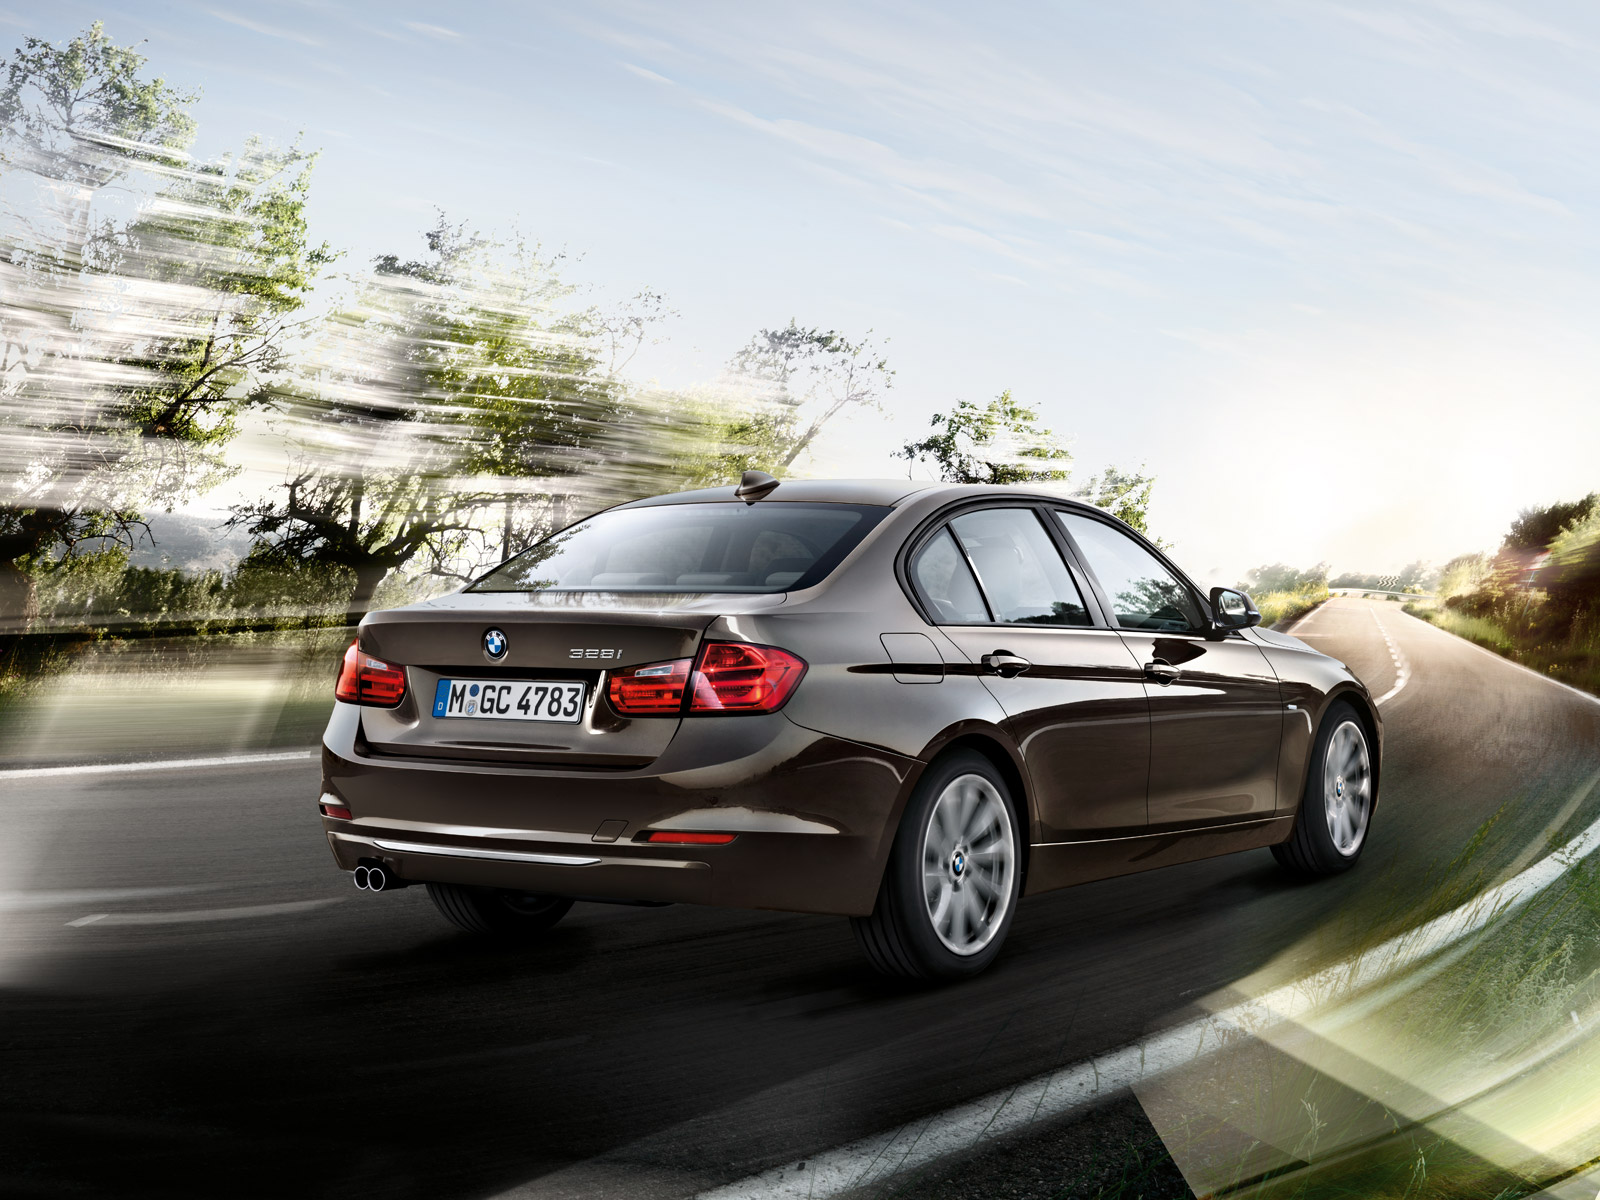 BMW_3series_wallpaper_13_1600